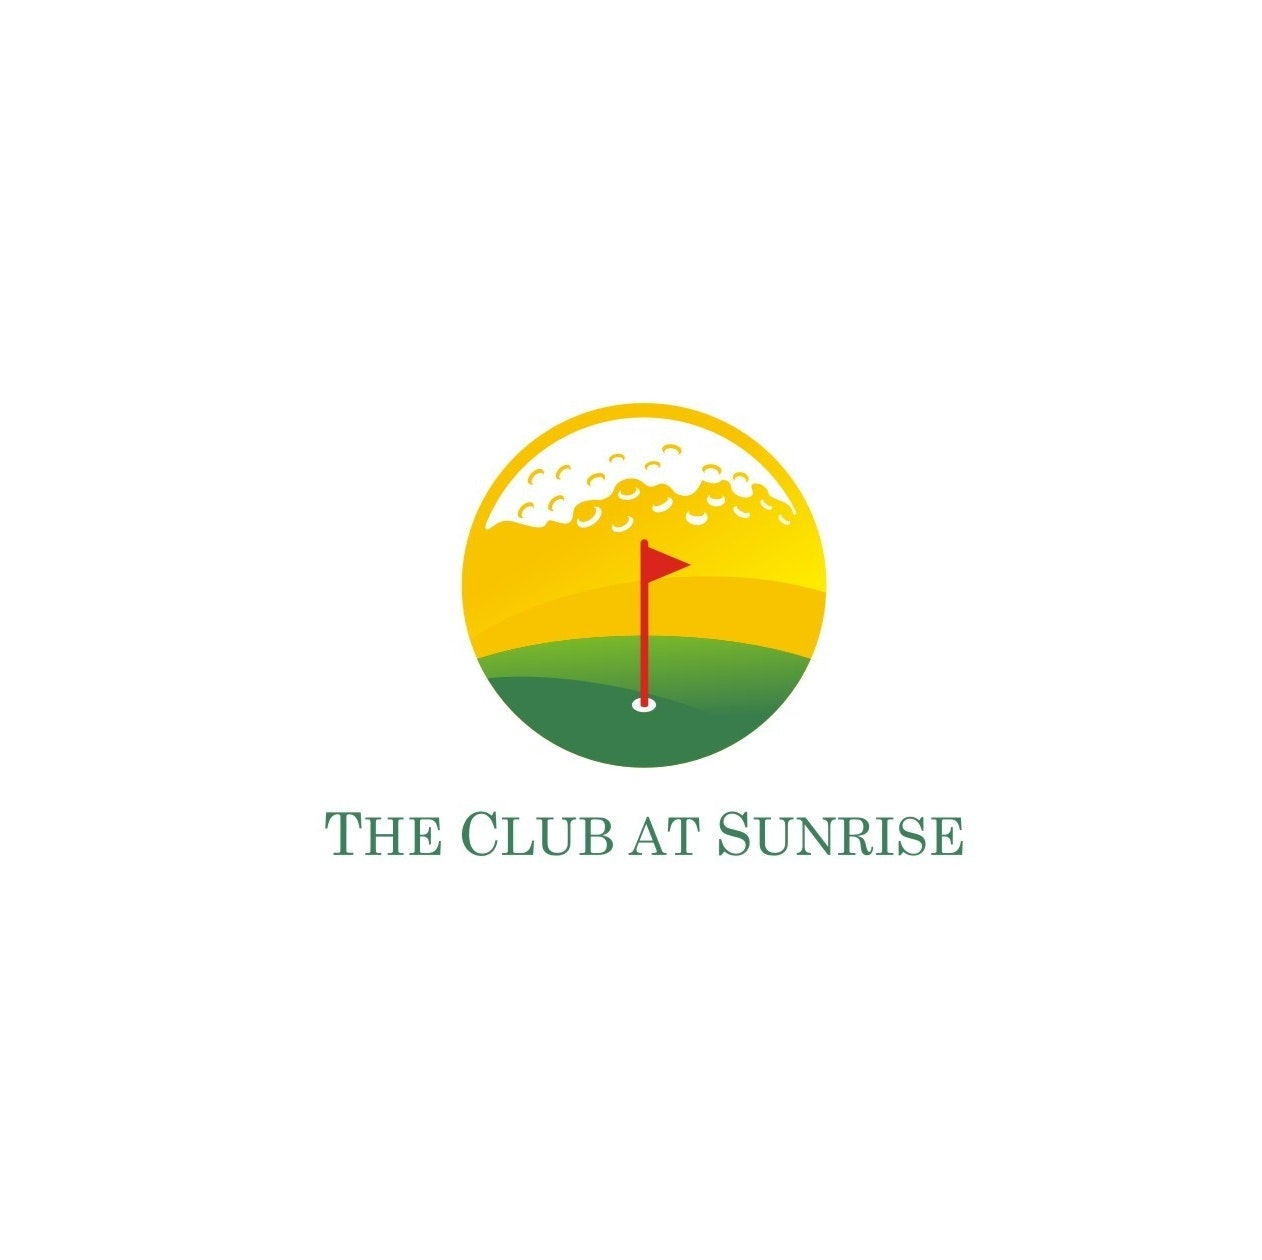 The Club at Sunrise logo